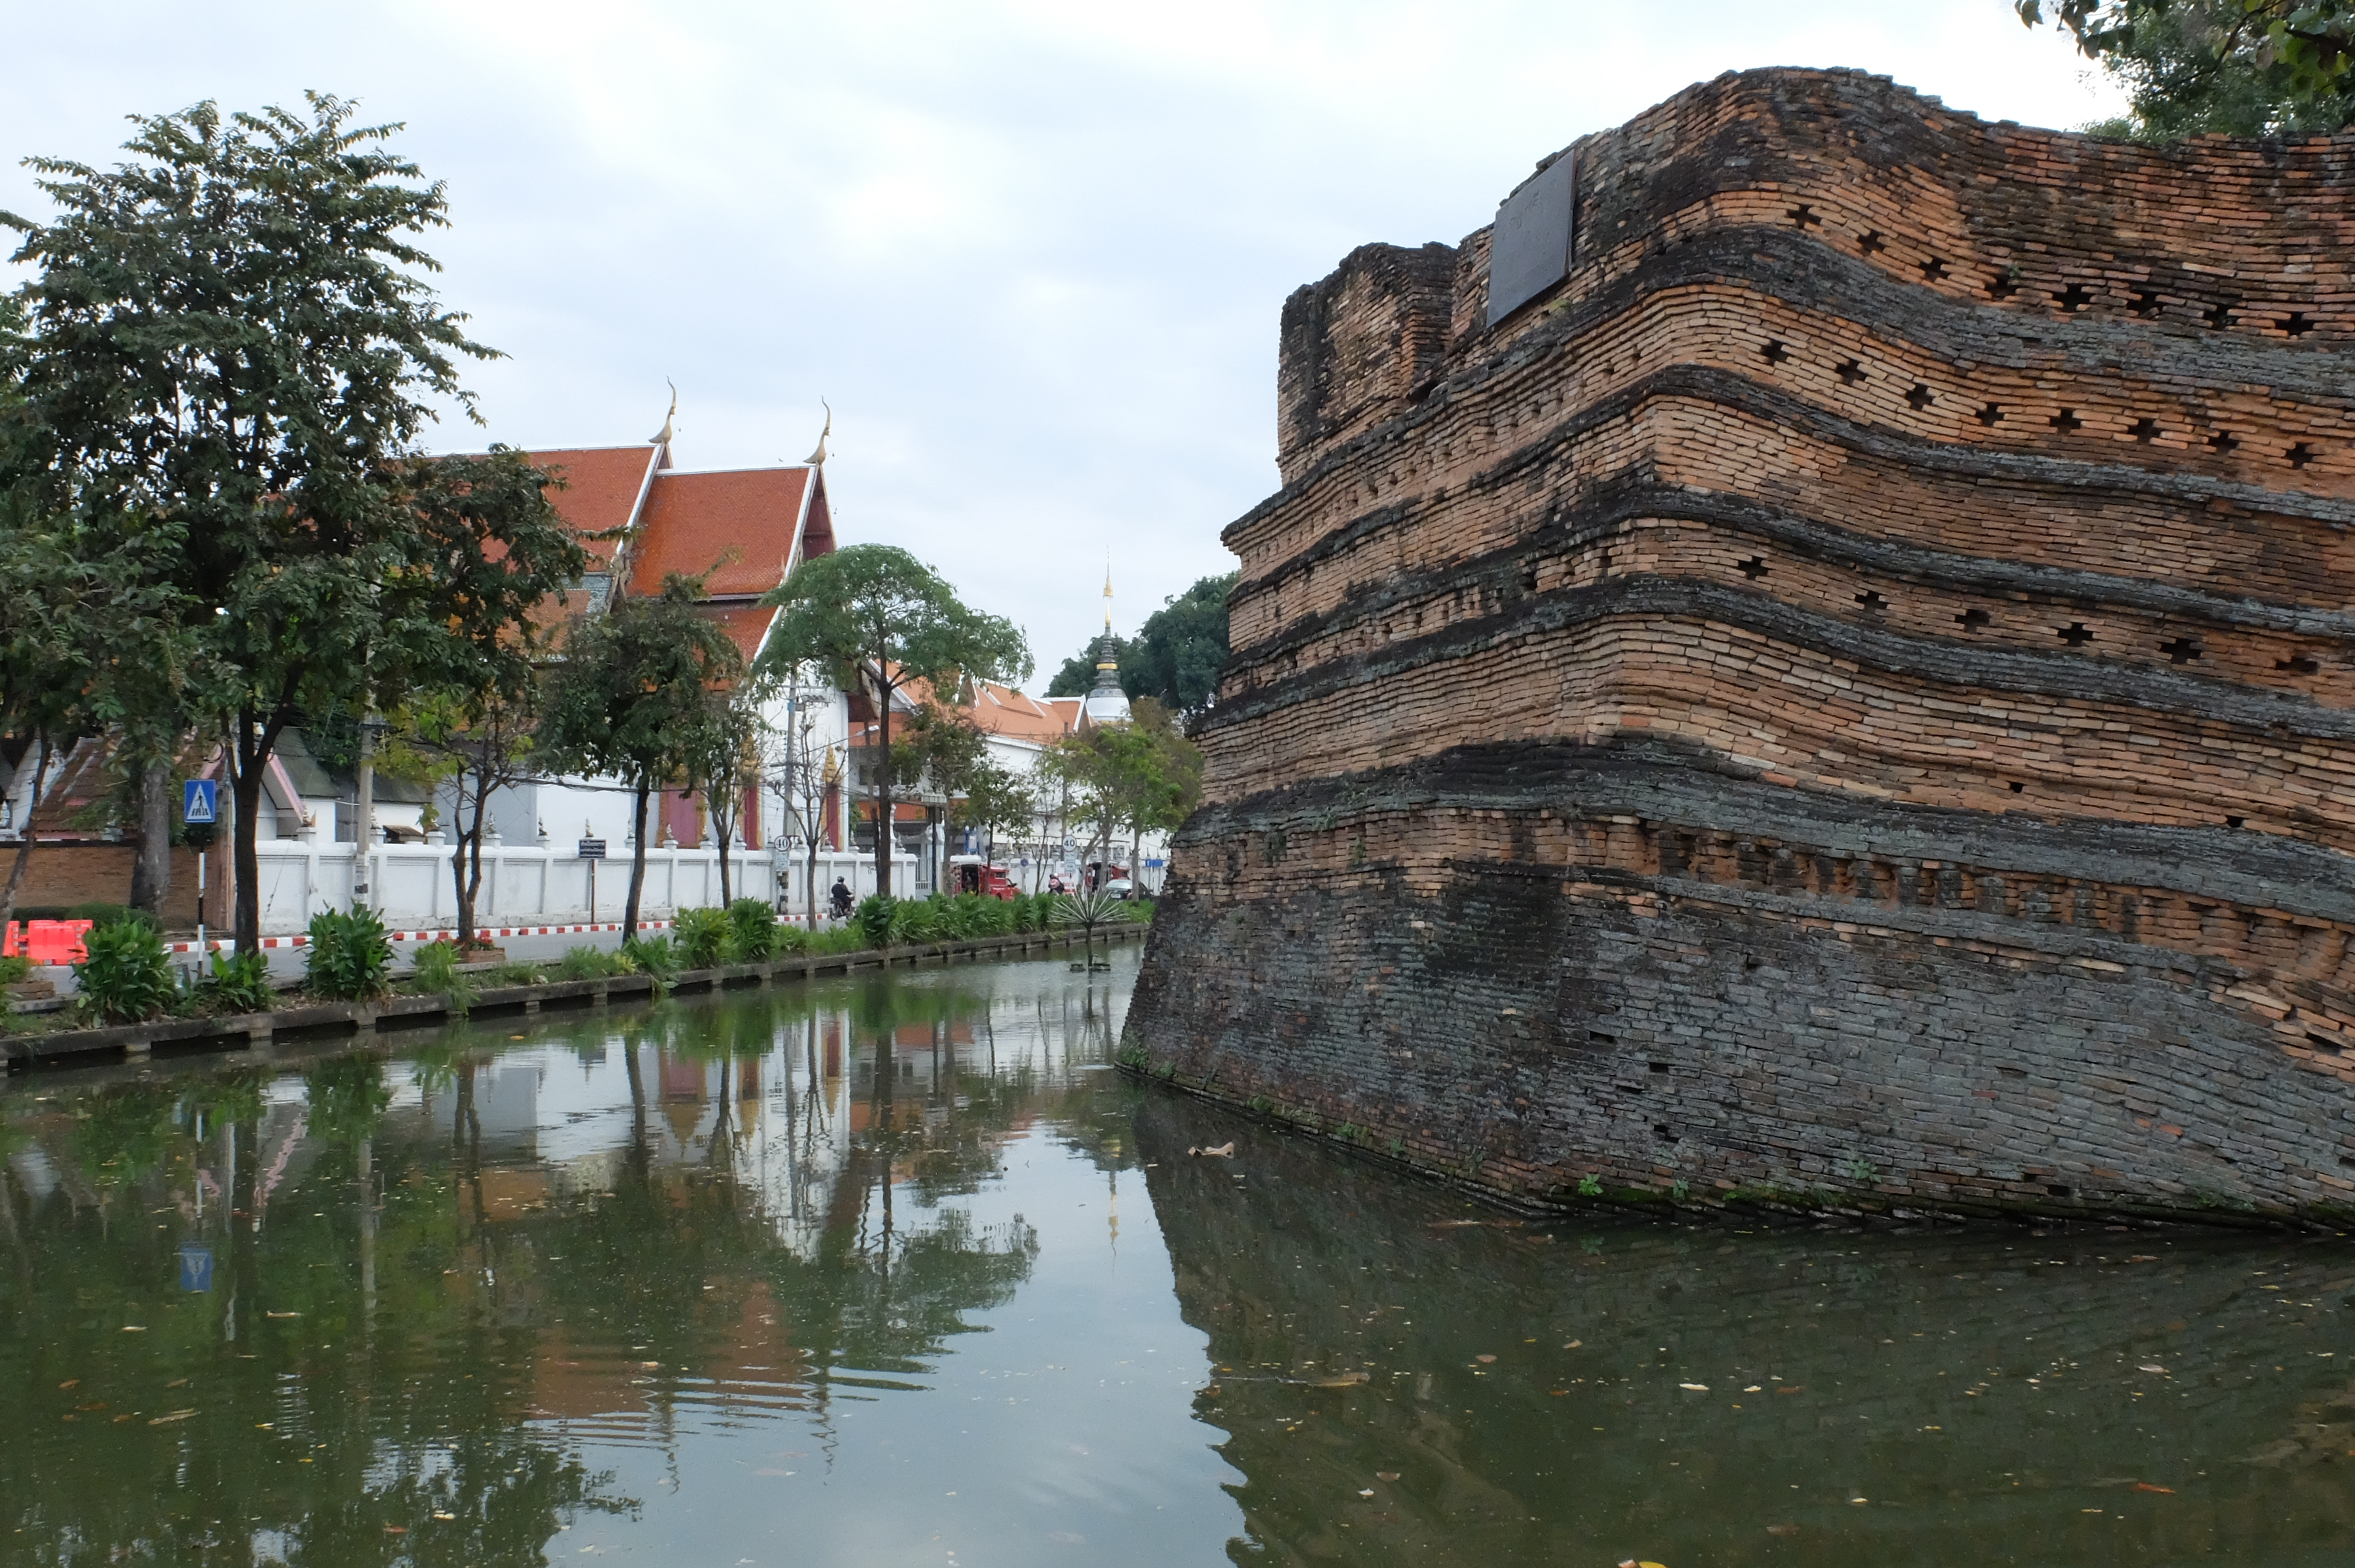 Chiang Mai – The moats of the city